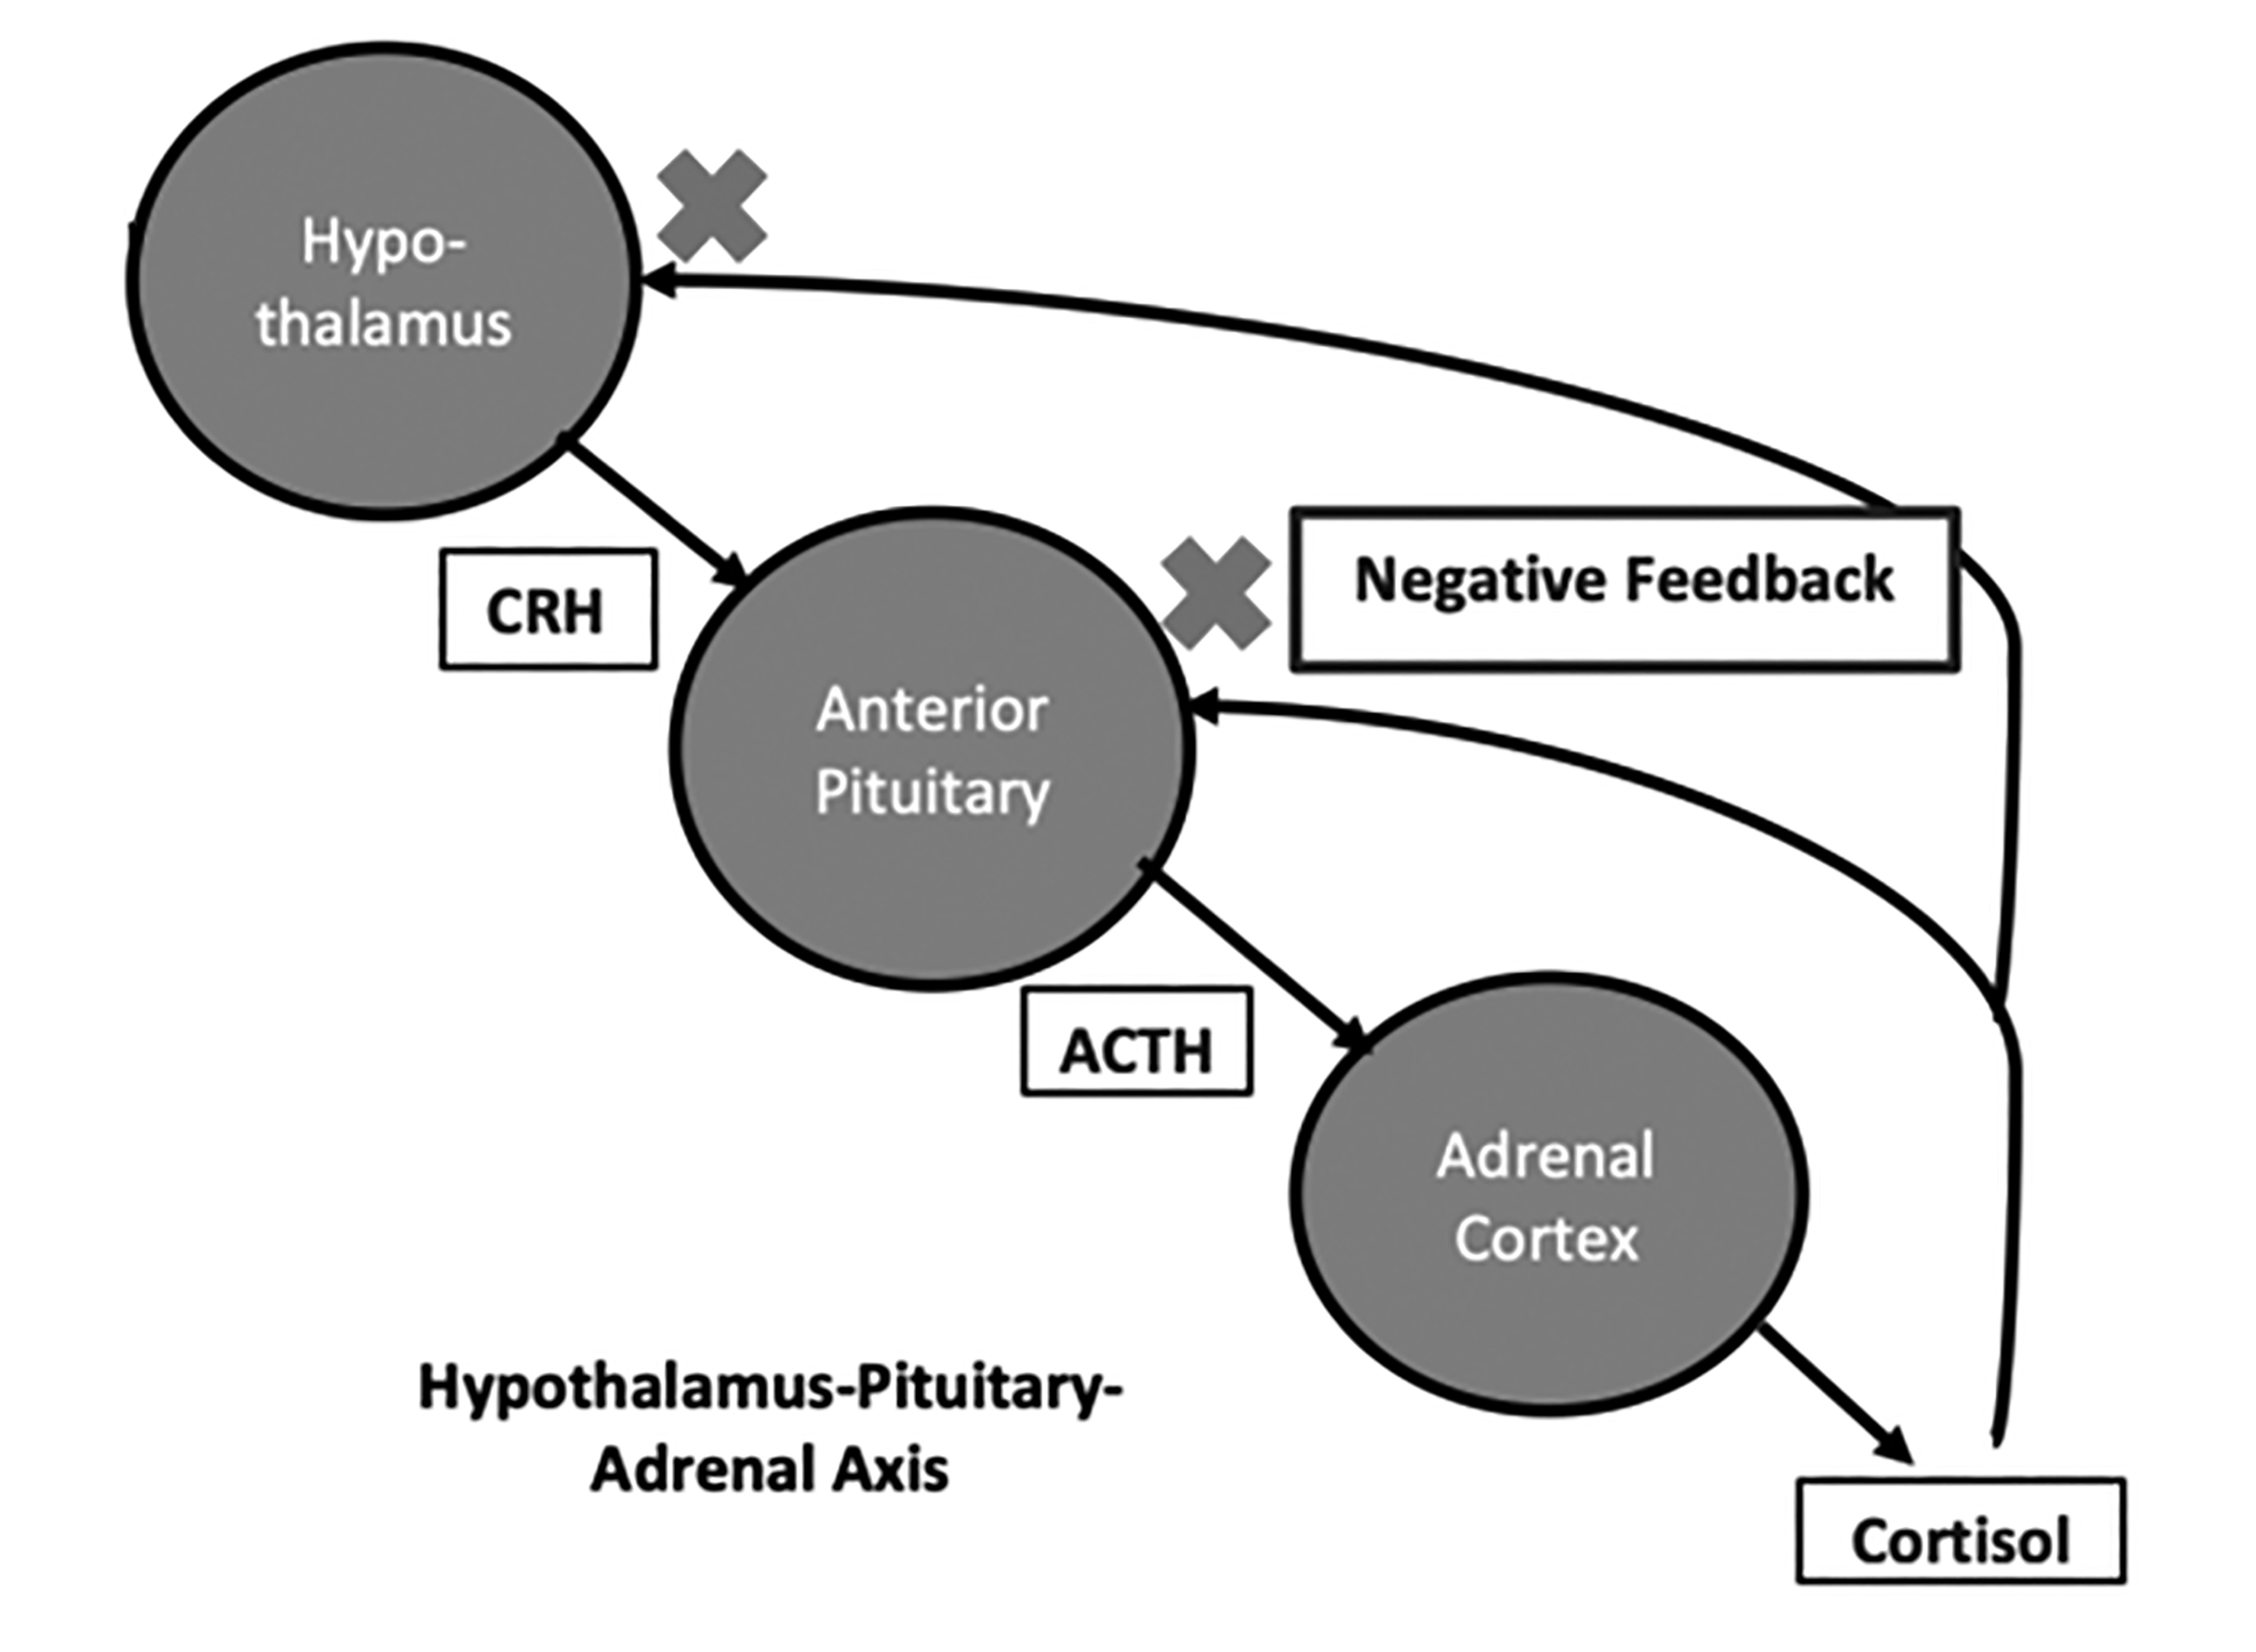 Hypothalamus-Pituitary-Adrenal Axis